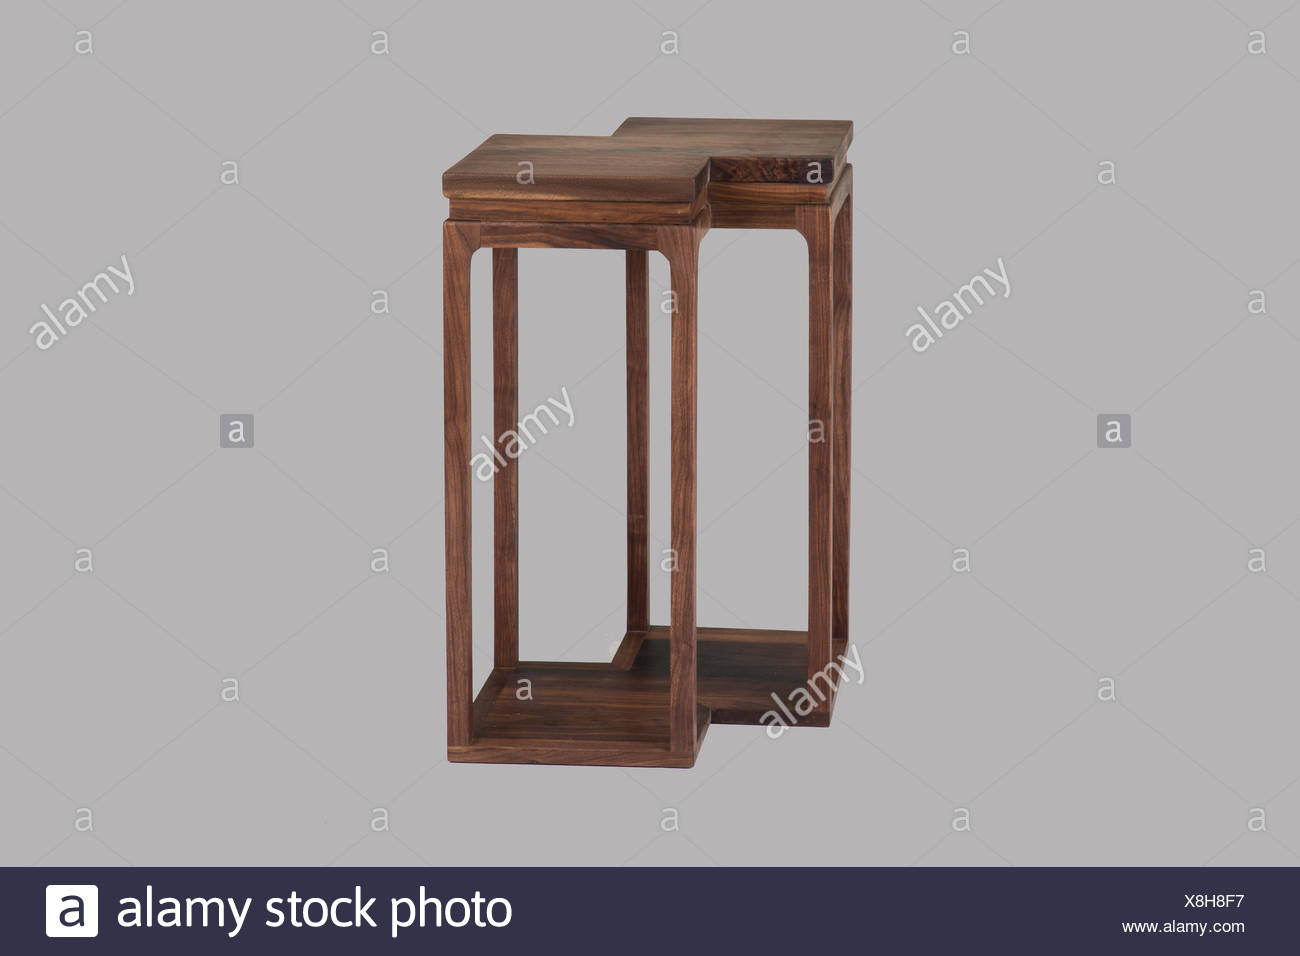 Furniture of Antiquity - Furniture Of Antiquity Stock Photo: 280663019 - Alamy